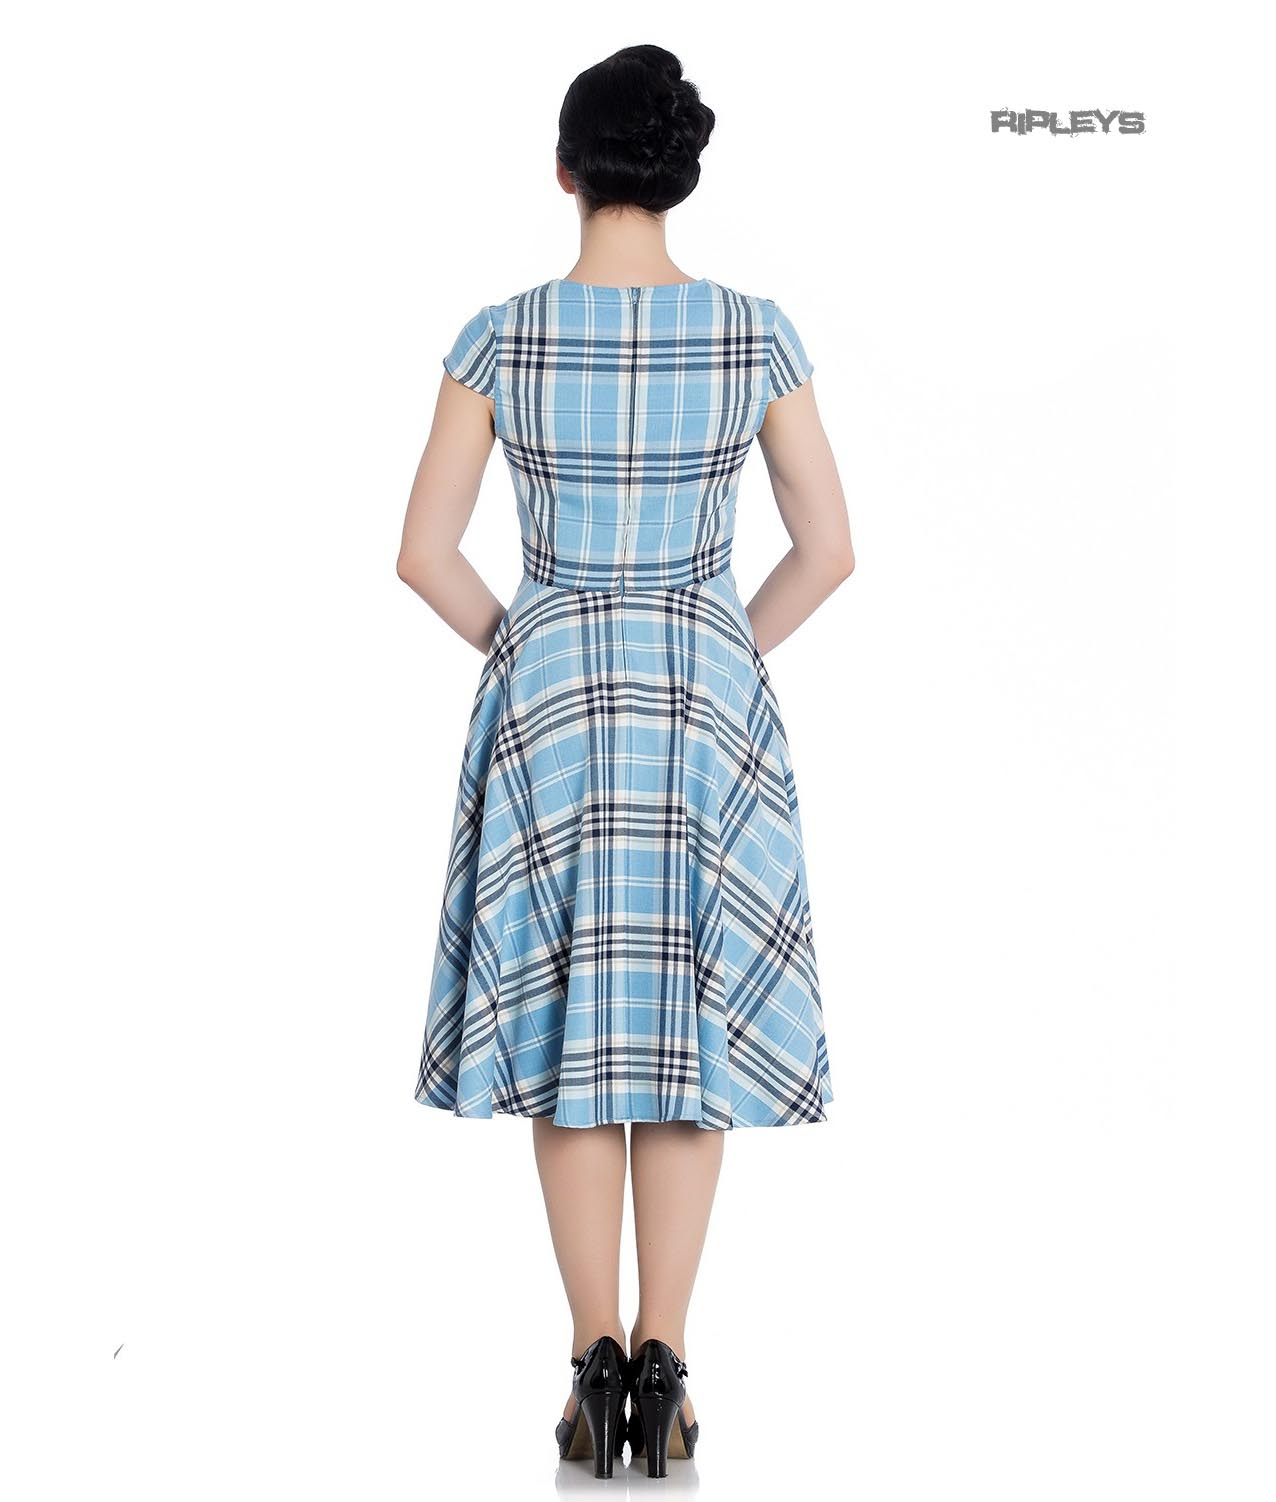 Hell-Bunny-Pinup-50s-Dress-ABERDEEN-Hogmony-Sky-Blue-amp-White-Tartan-All-Sizes thumbnail 8